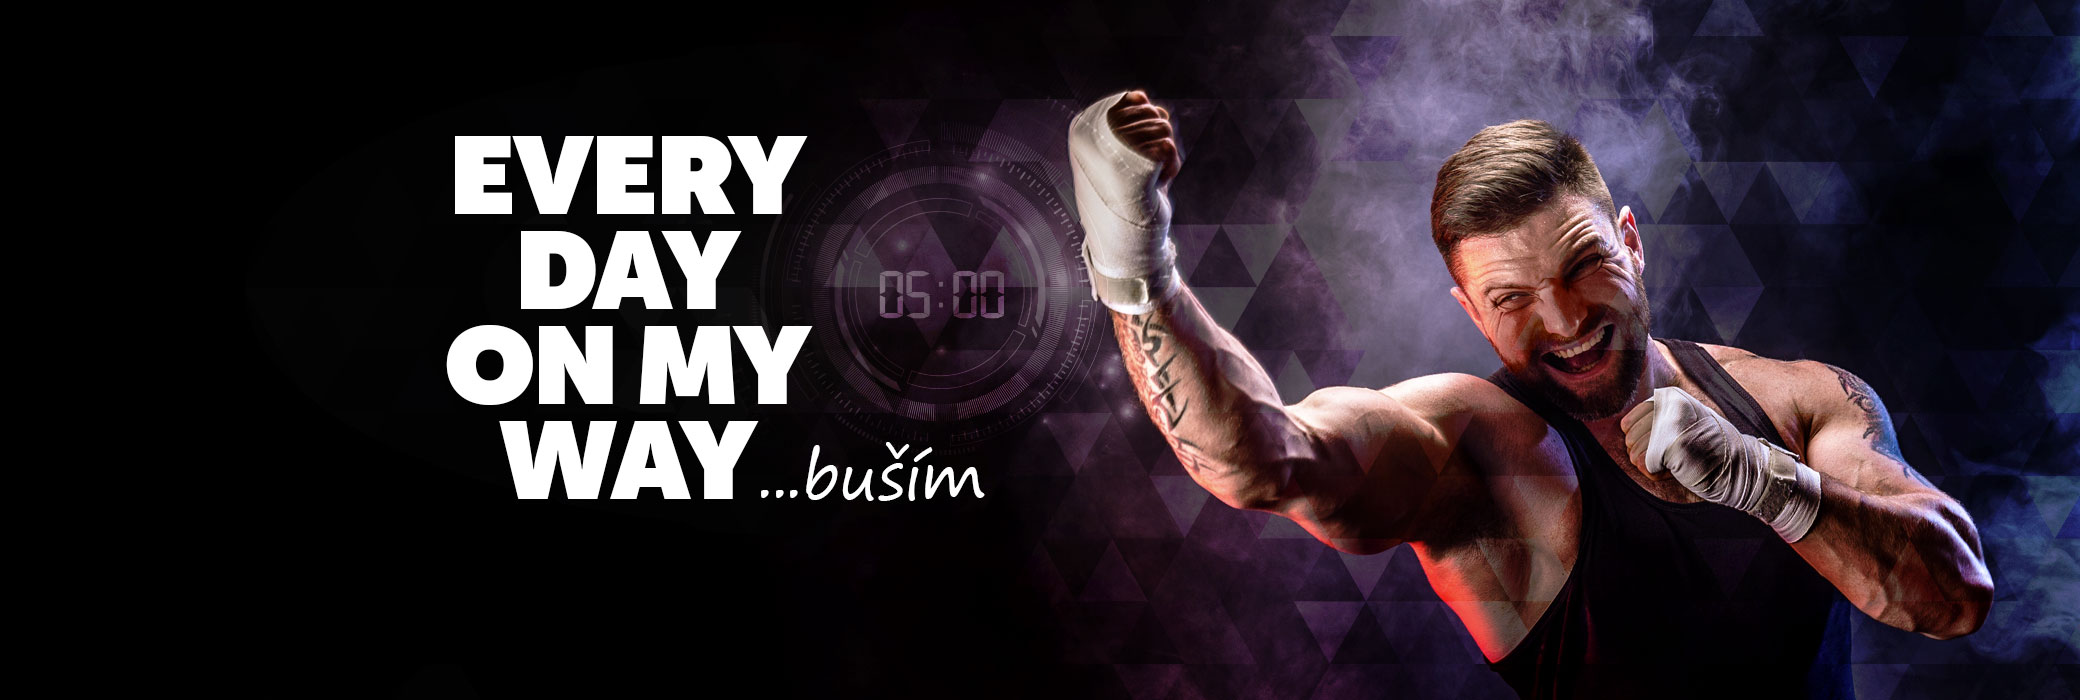 EVERY DAY ON MY WAY - buším